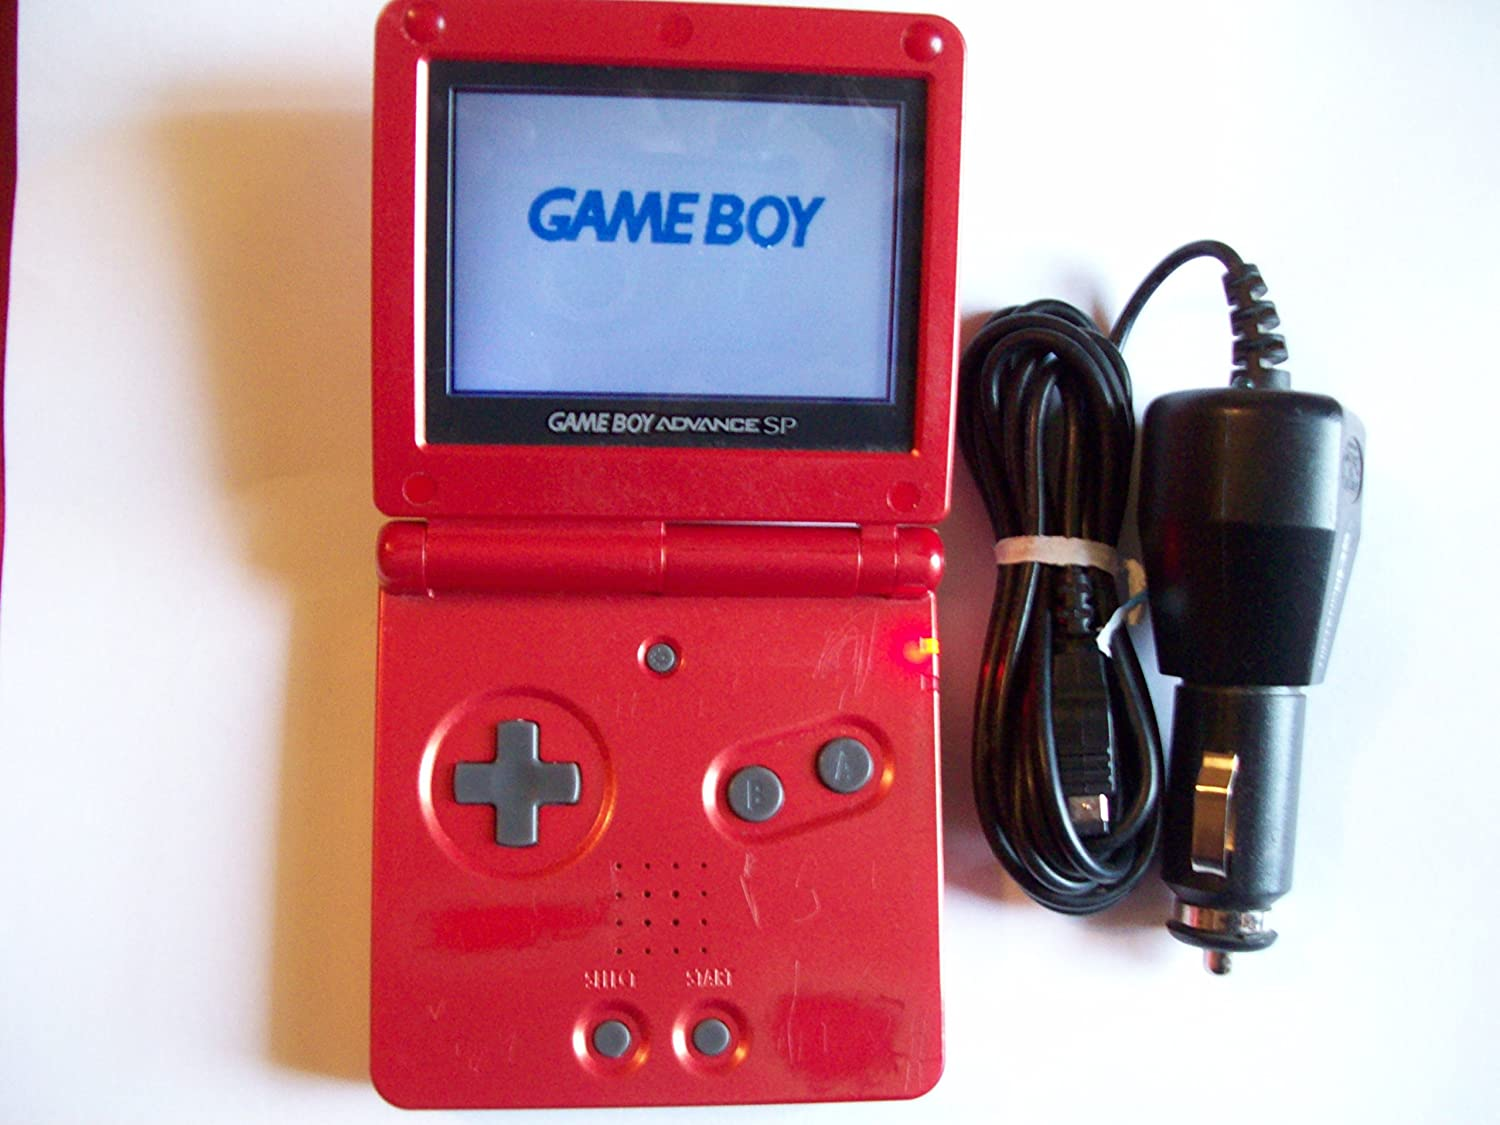 Gameboy color emulator online - Amazon Com Nintendo Game Boy Advance Sp Ags 101 Flame Red Video Games